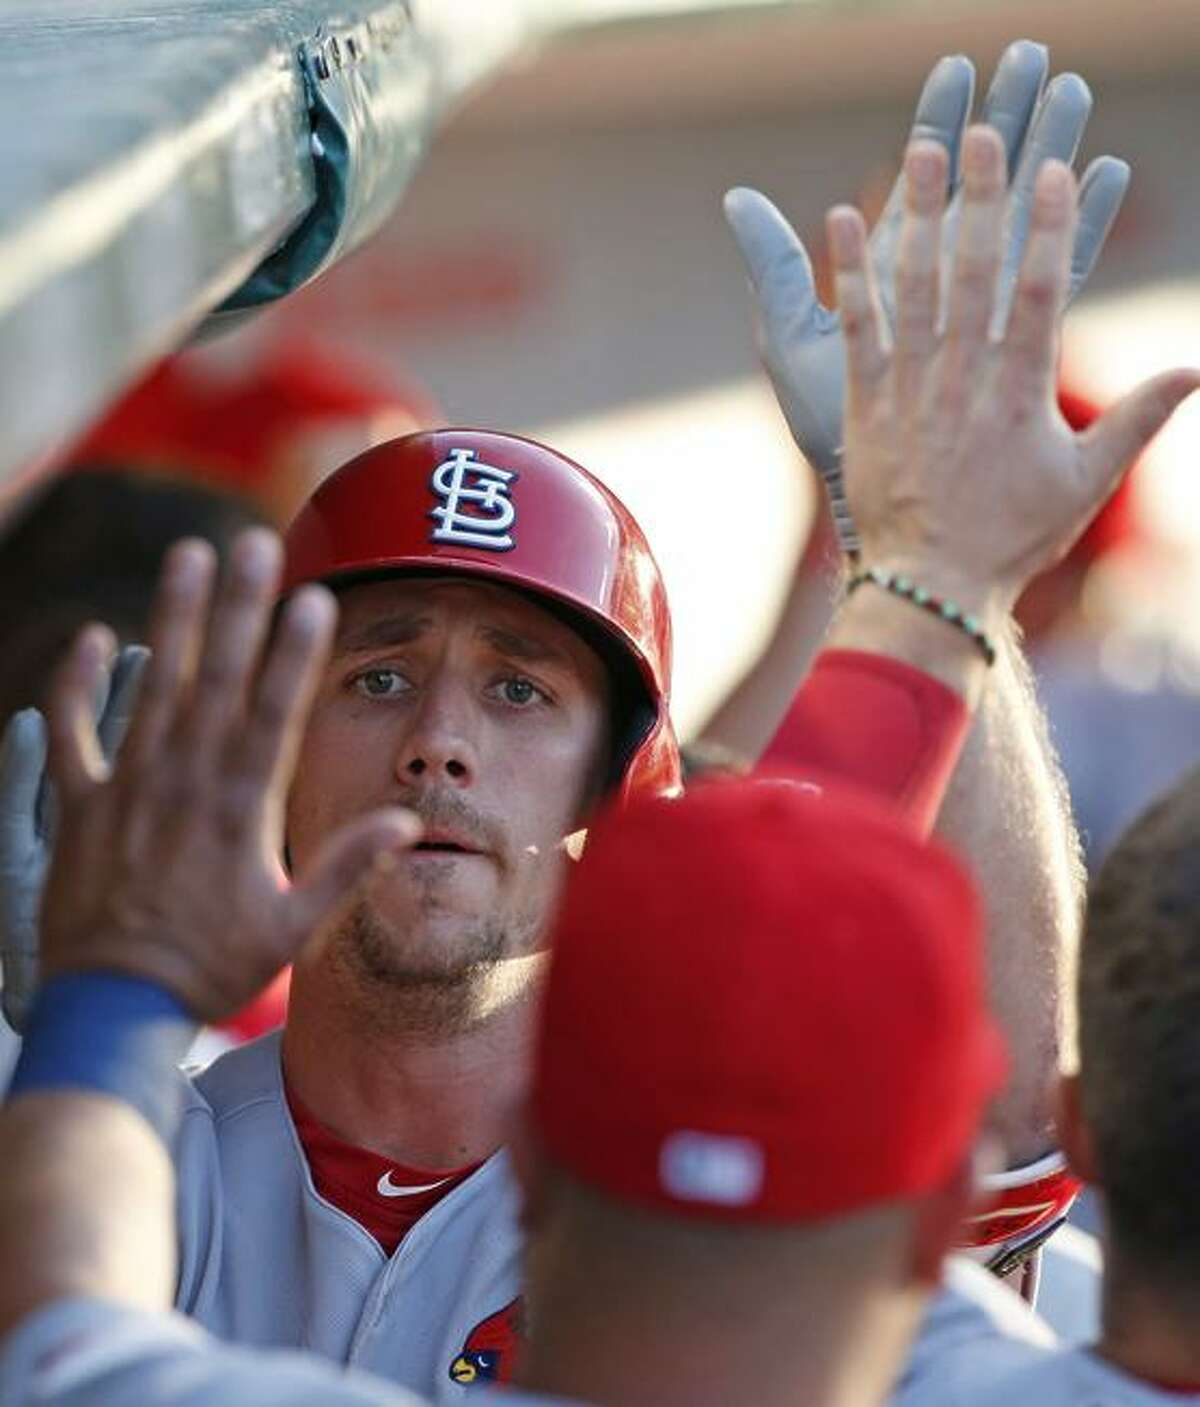 The Cardinals' Stephen Piscotty hit .235 with nine homers in 2017.